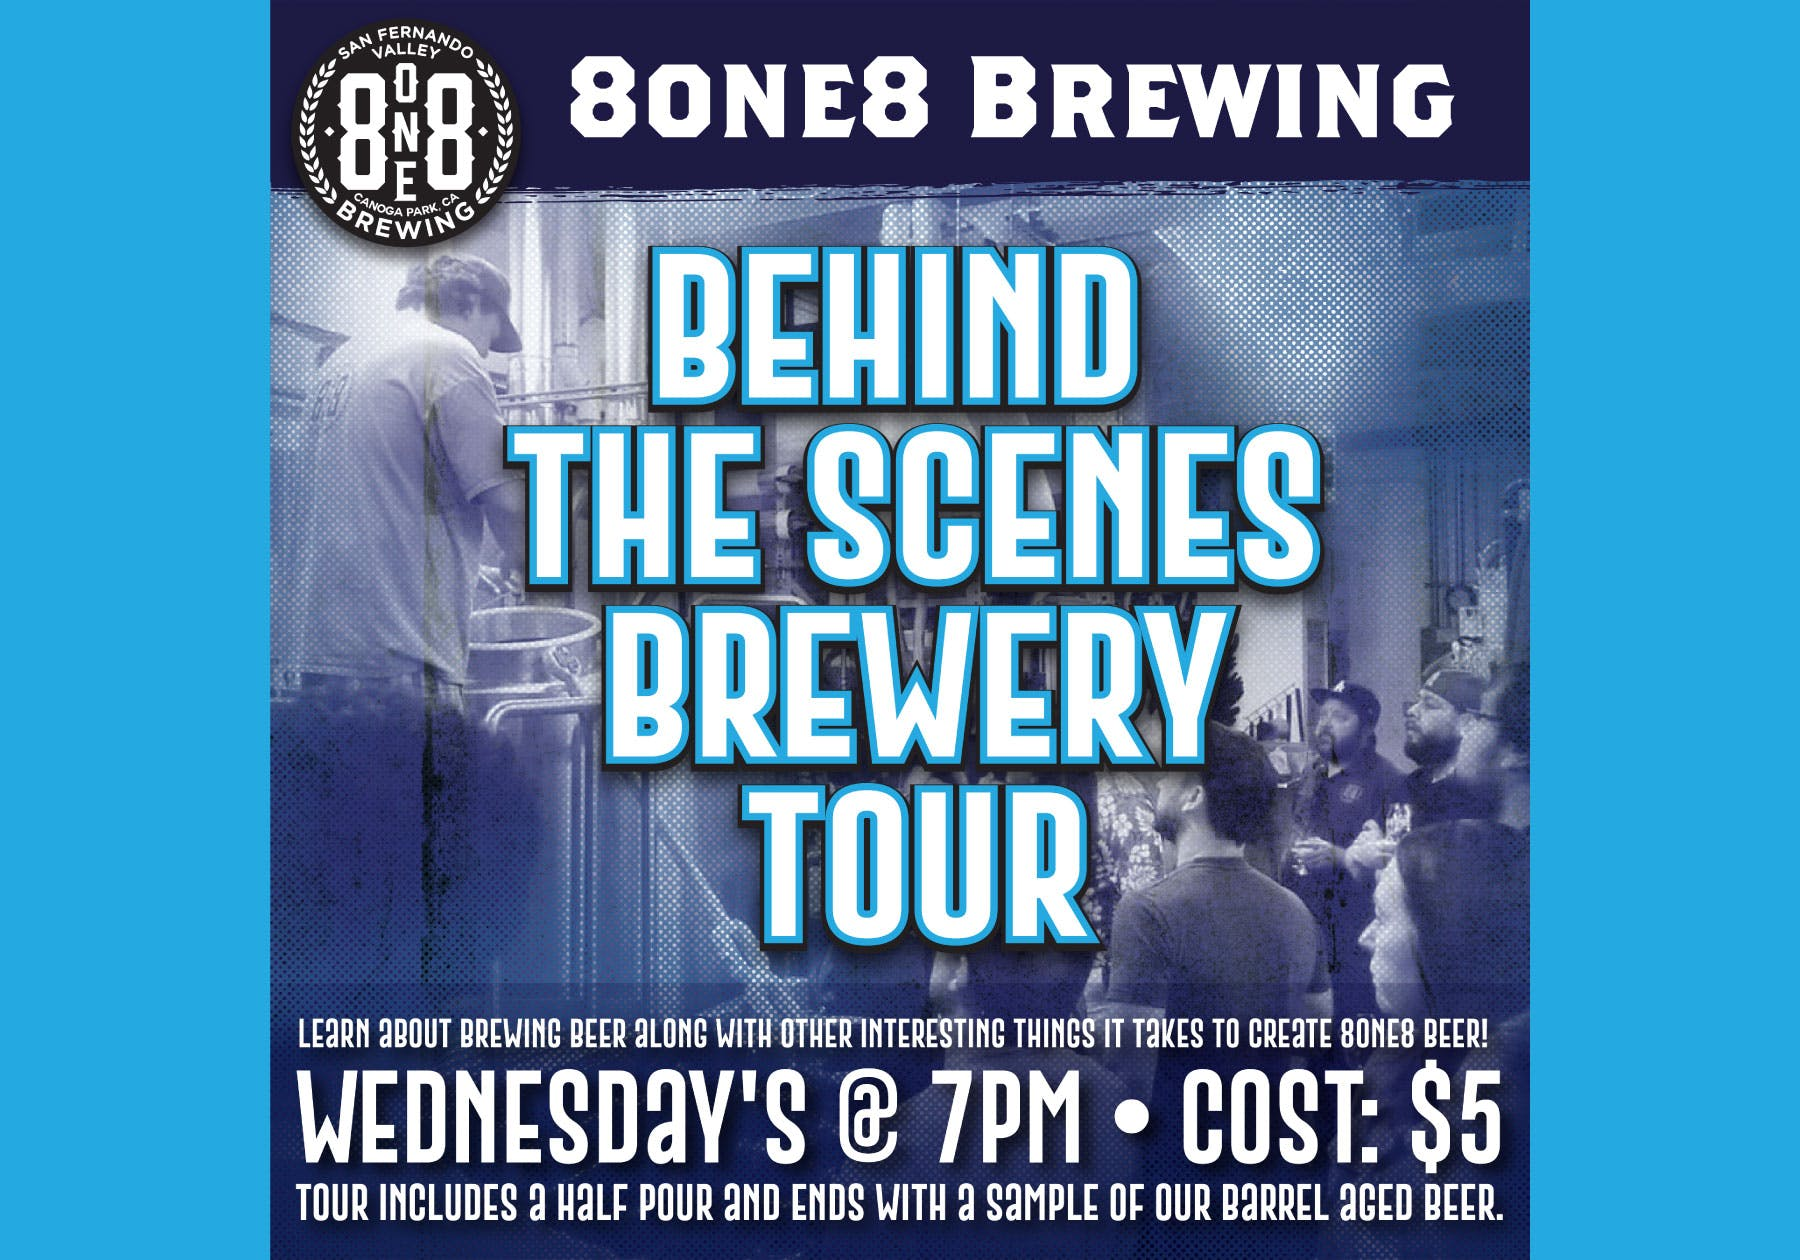 818 brewery tour flyer